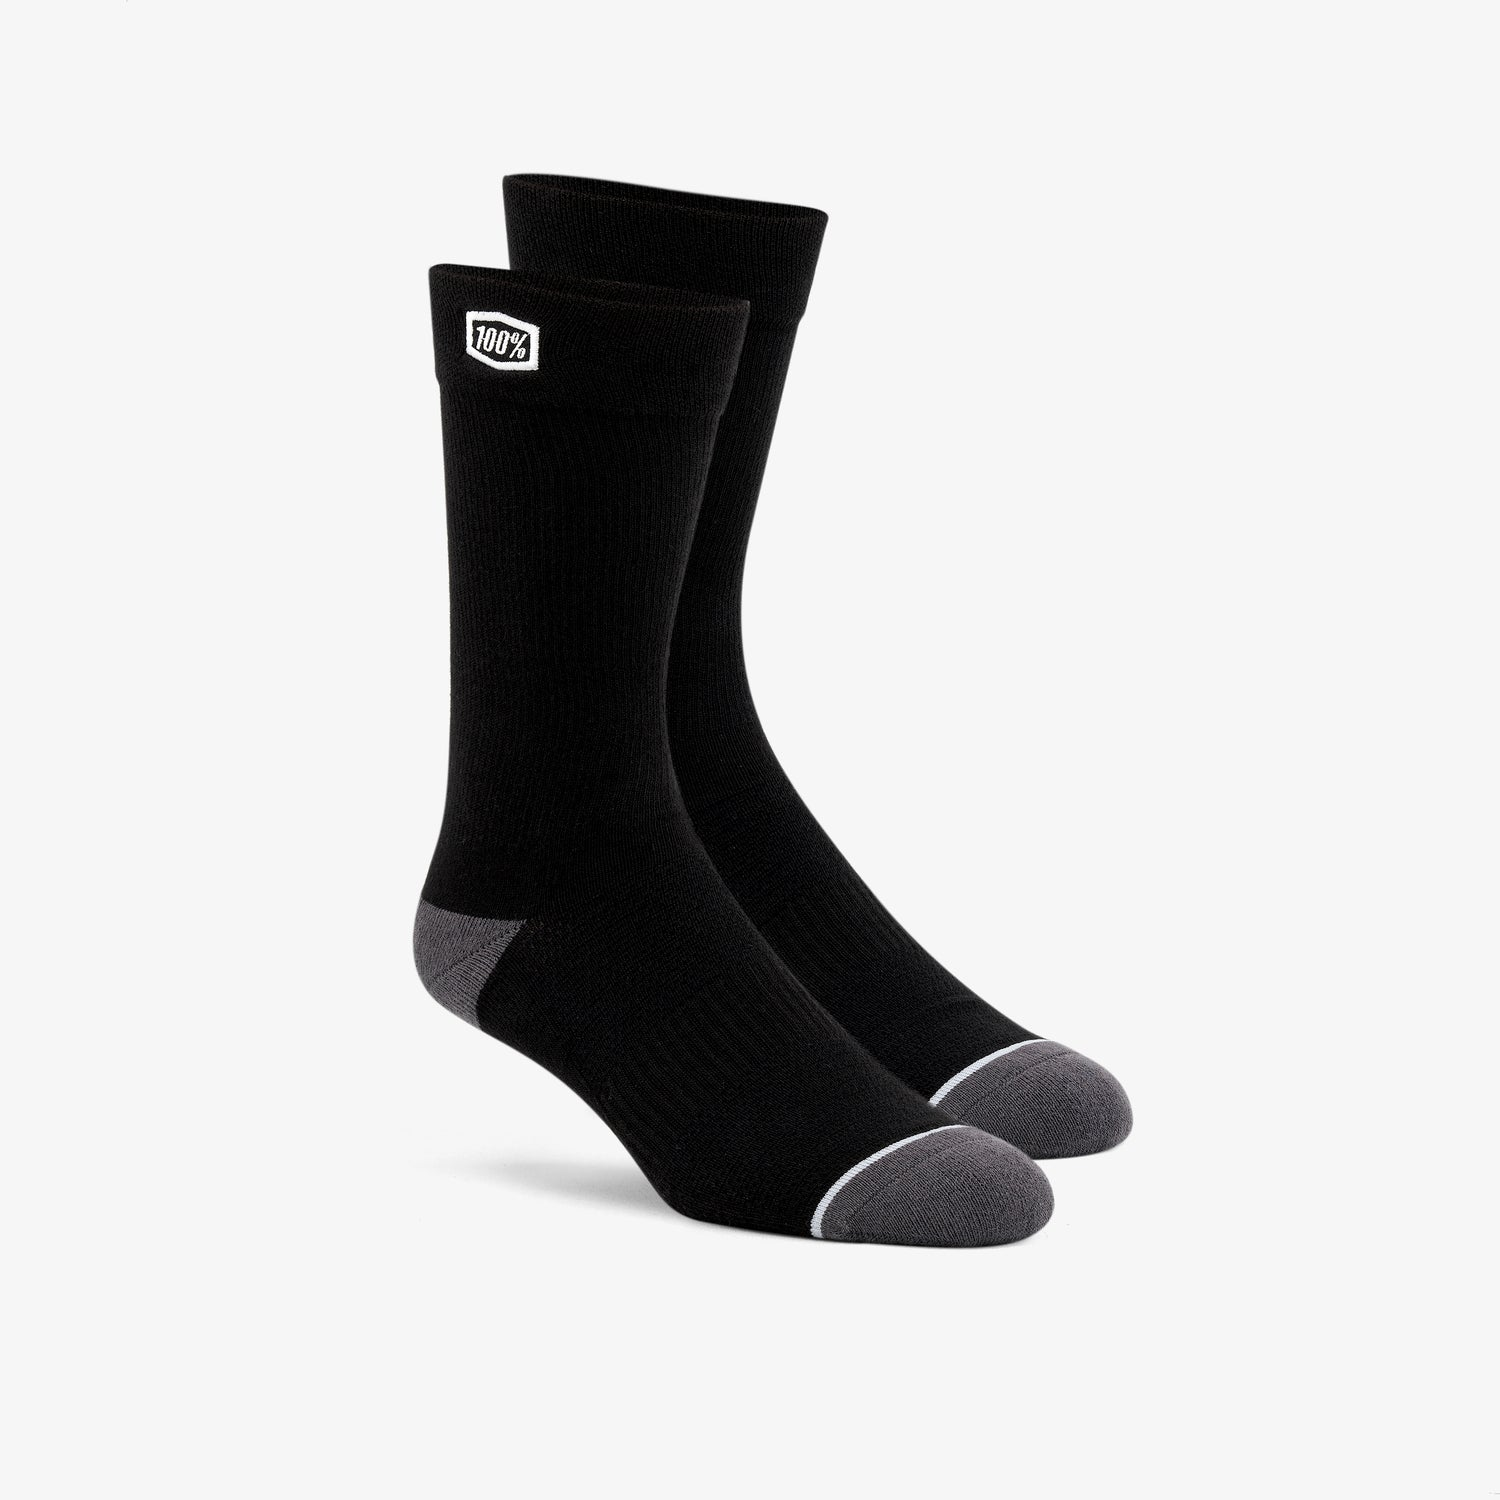 SOLID Casual Socks Black